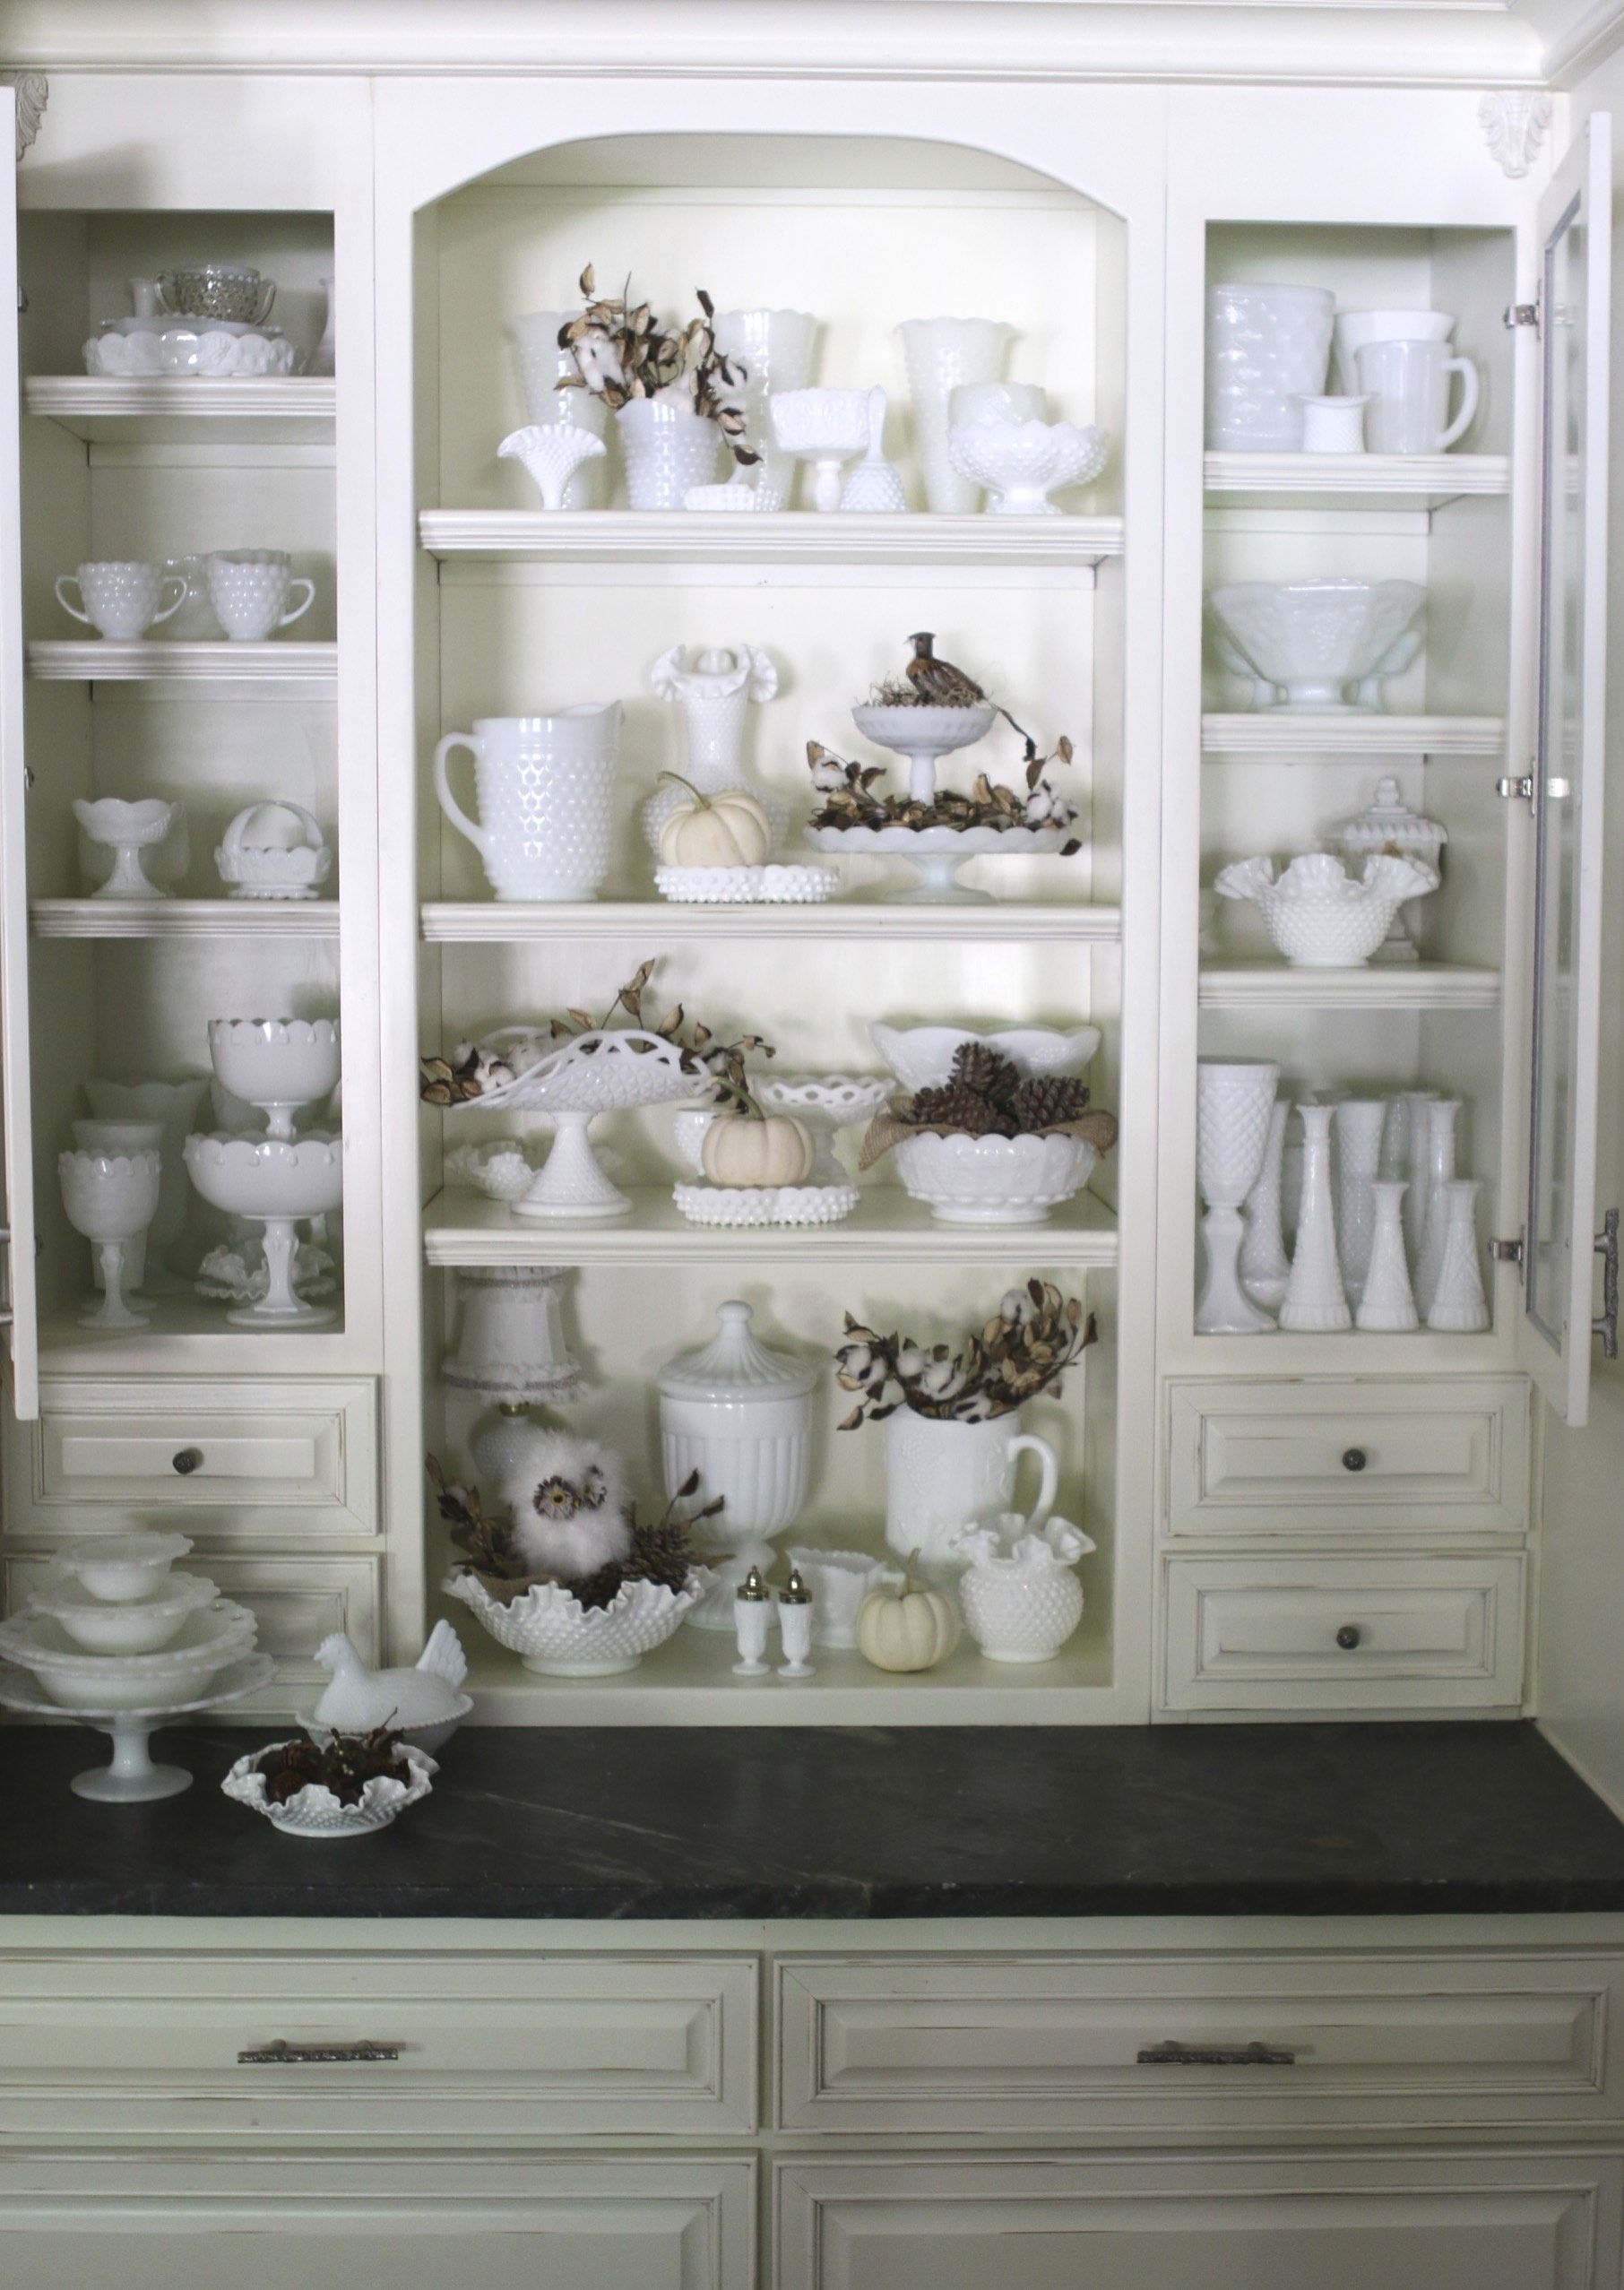 Milk glass collection I love it …